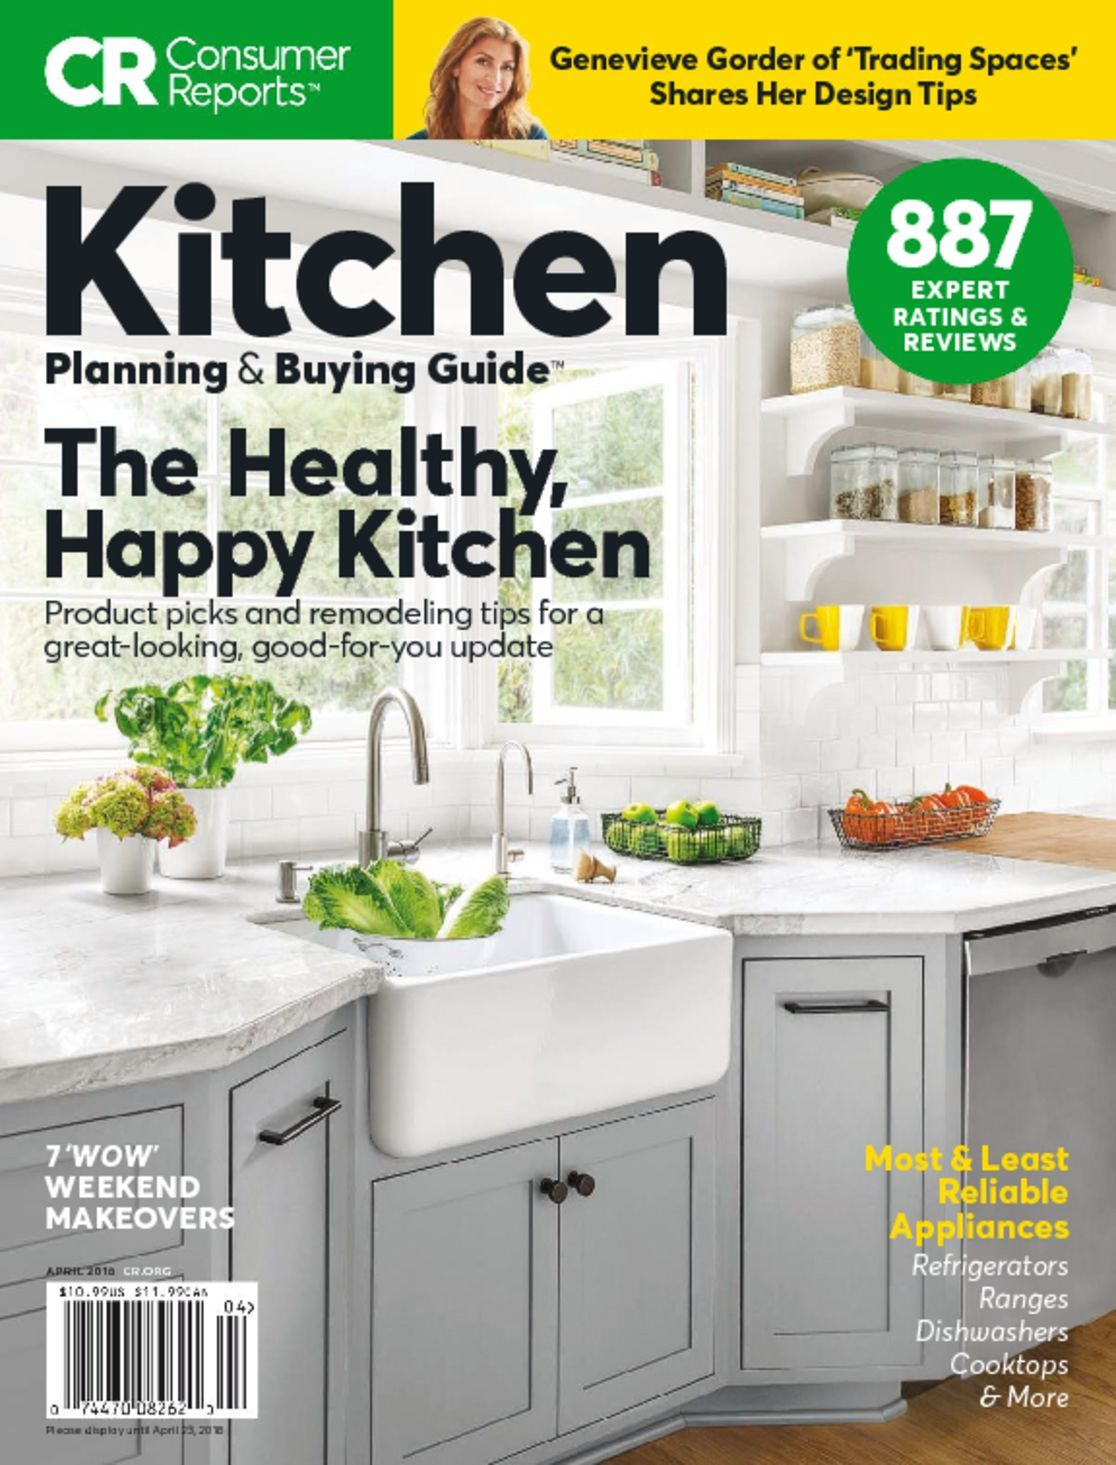 Consumer Reports Kitchen Planning and Buying Guide Digital